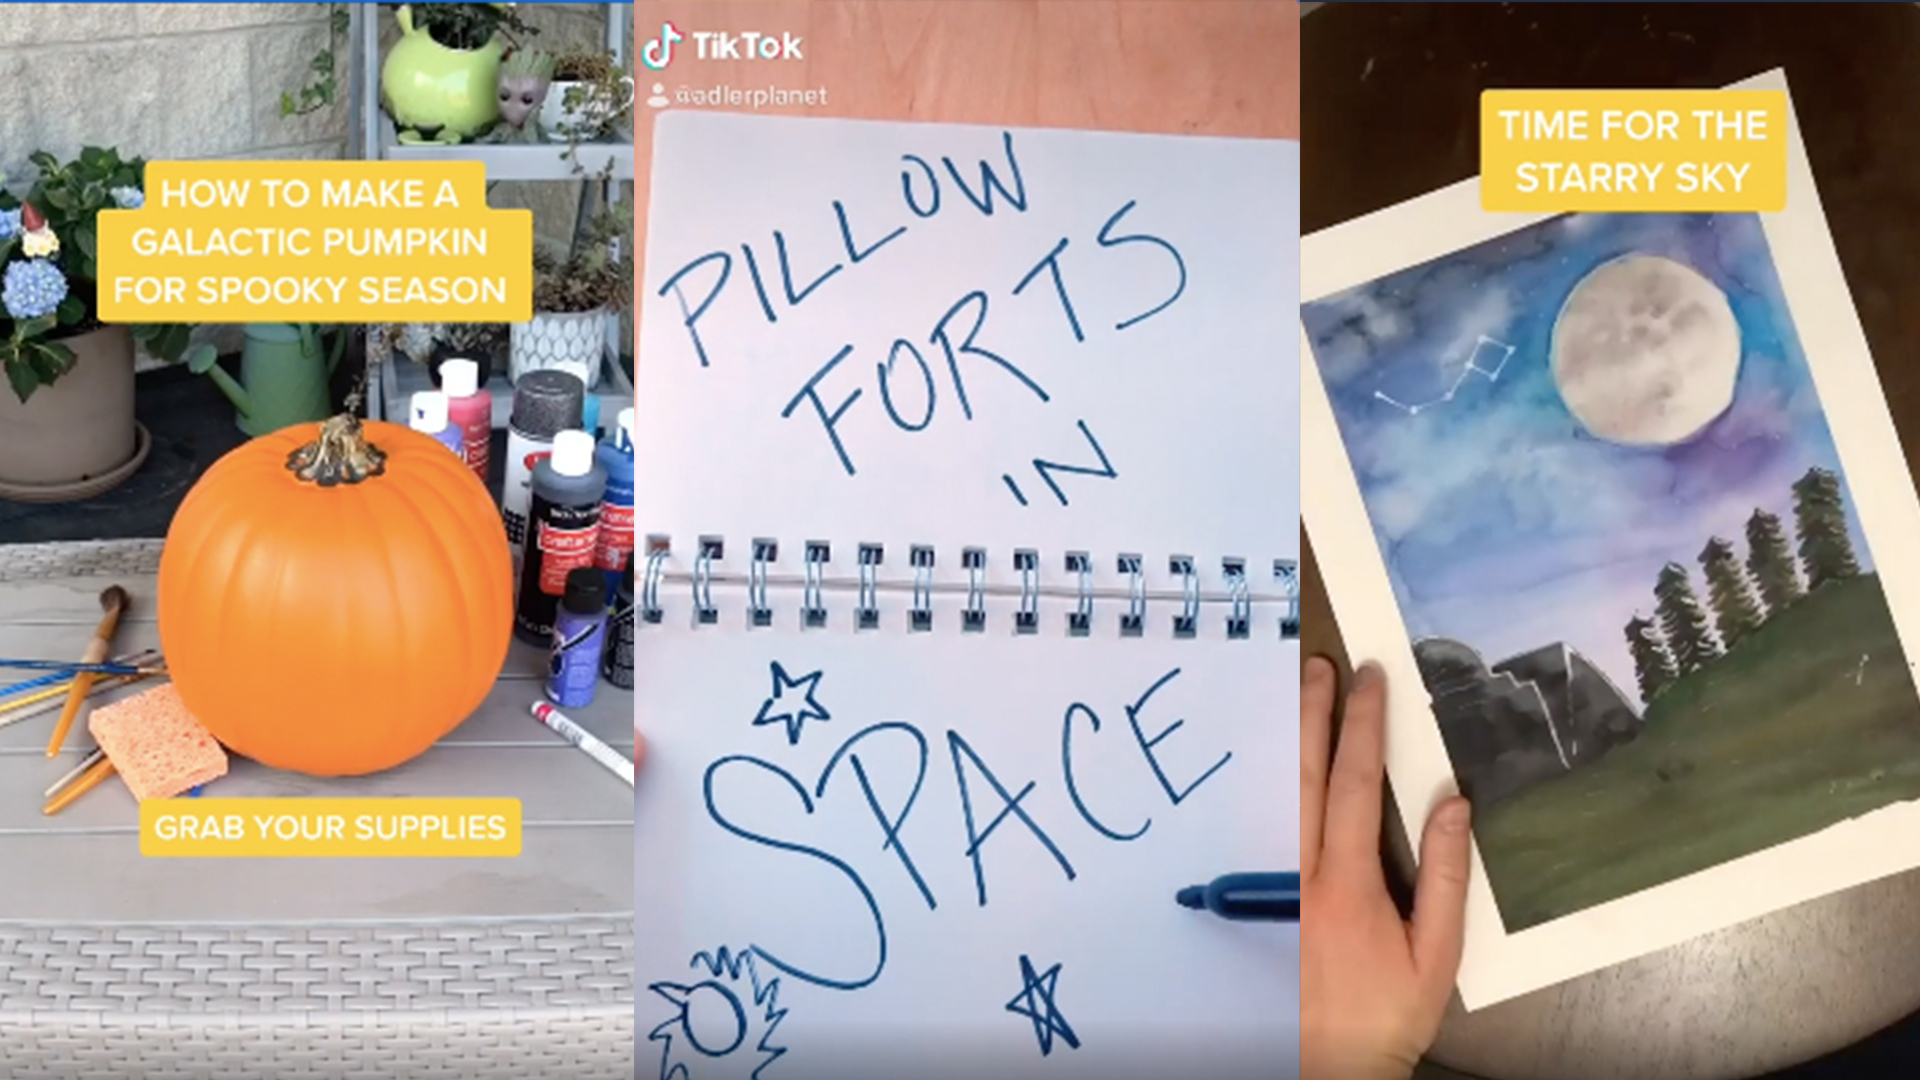 Pillow forts in space. Galactic Pumpkins and Watercolors